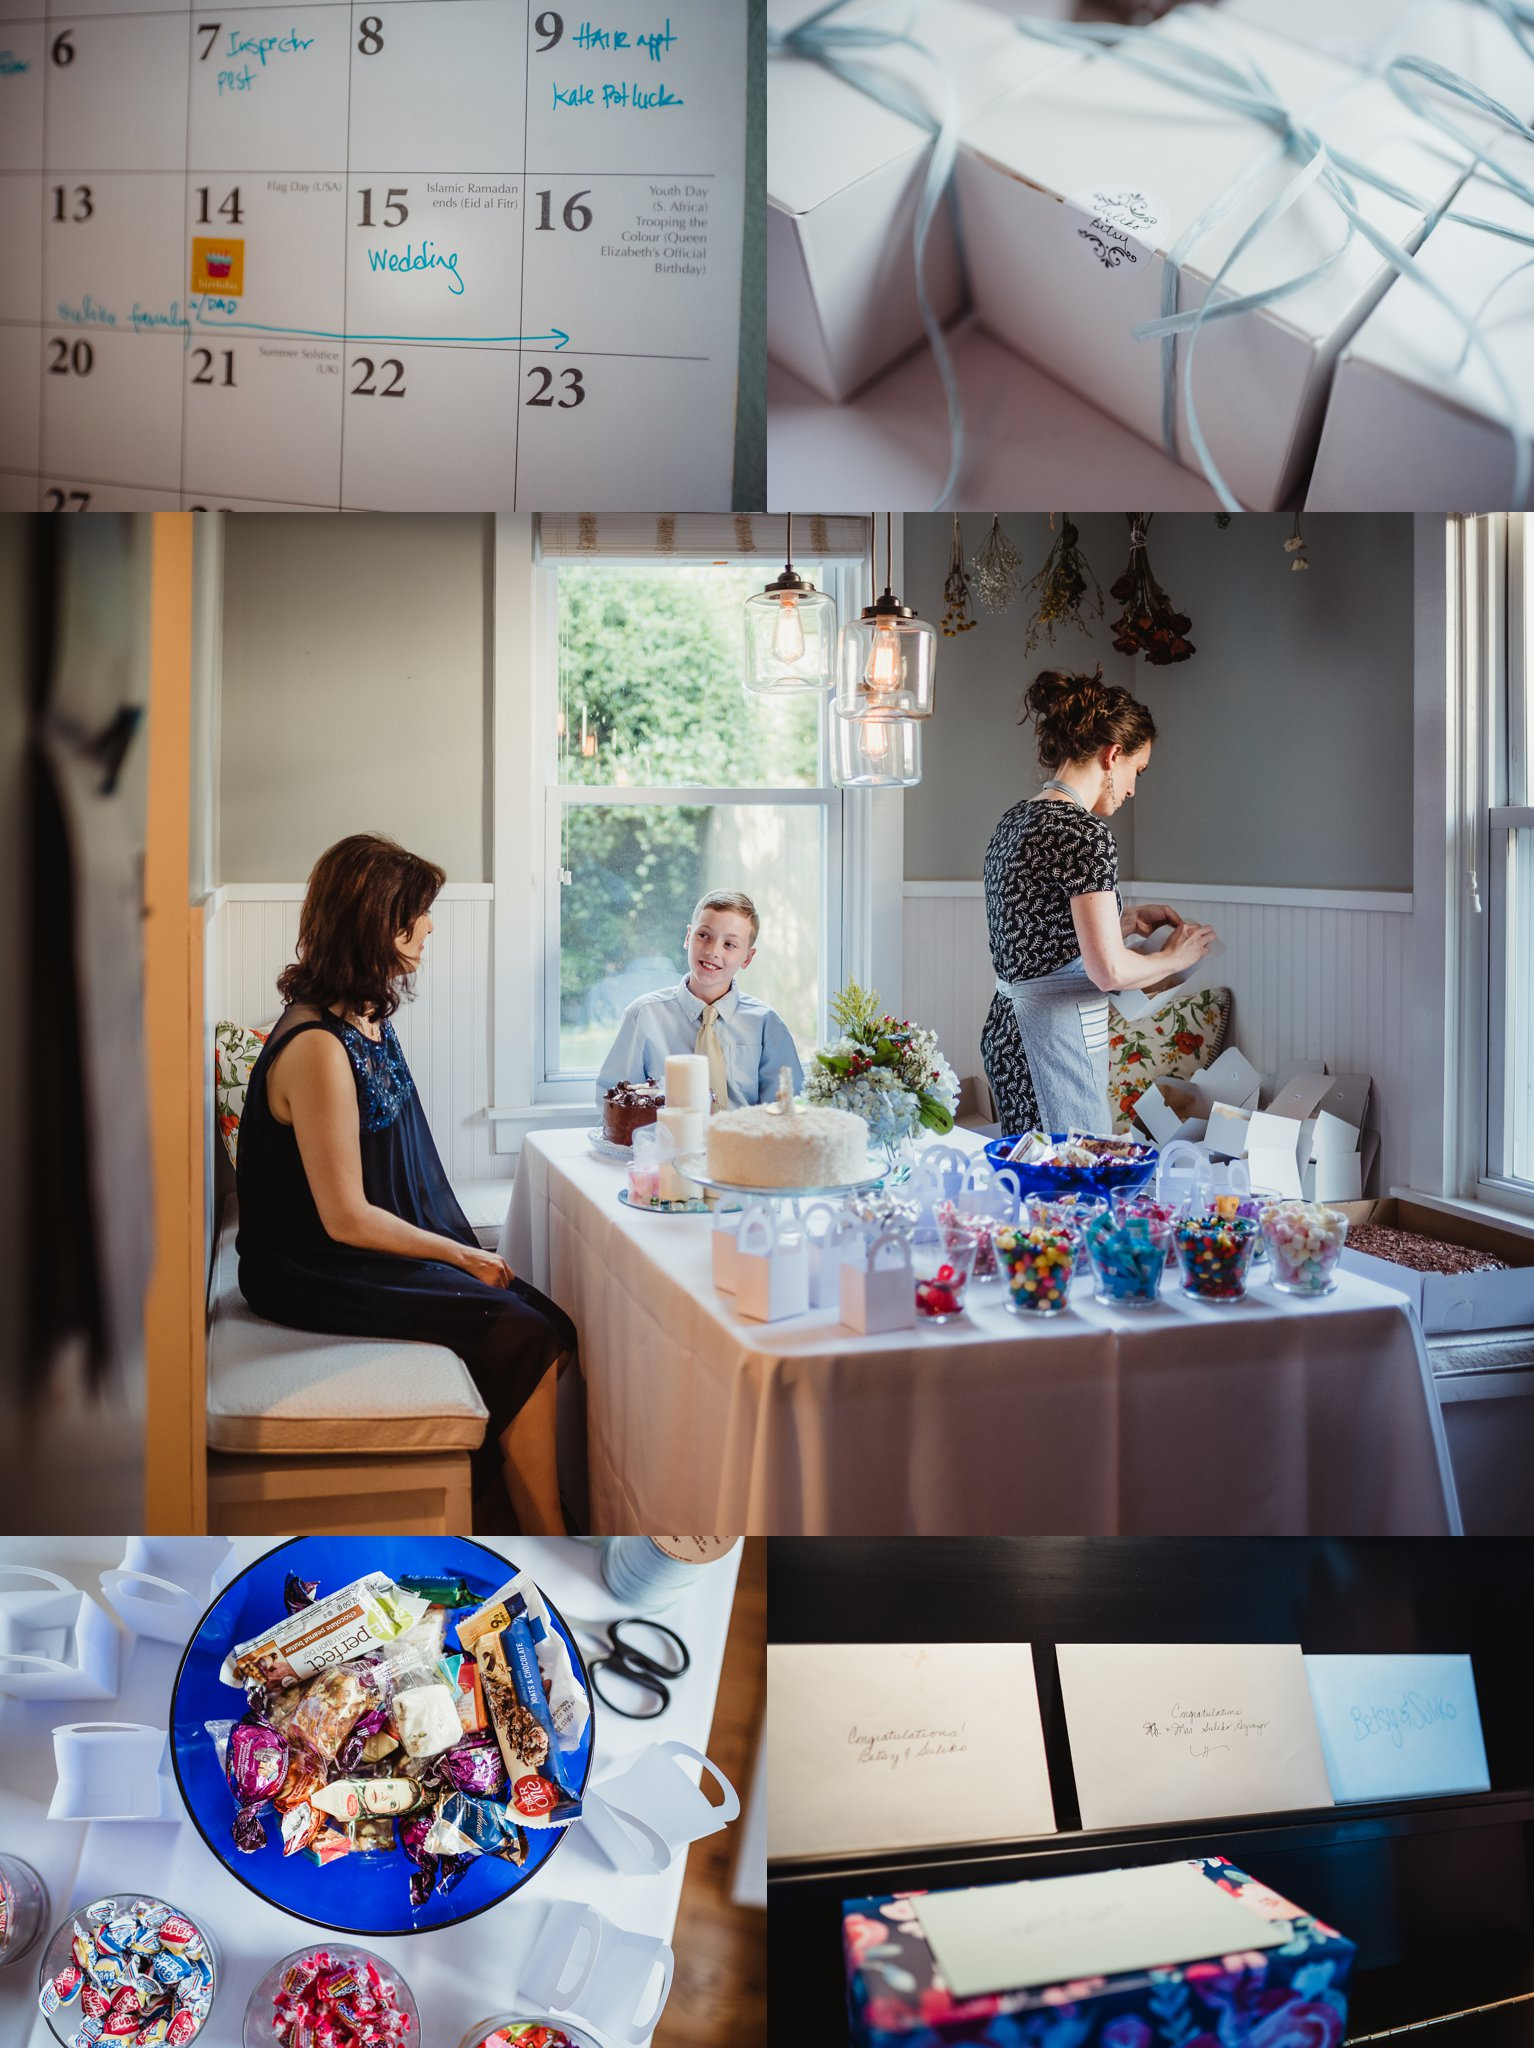 Details of their intimate wedding at home in Raleigh include their calendar, cake boxes with their name, cards on their piano, and ethnic treats from their travels abroad, photos by Rose Trail Images.